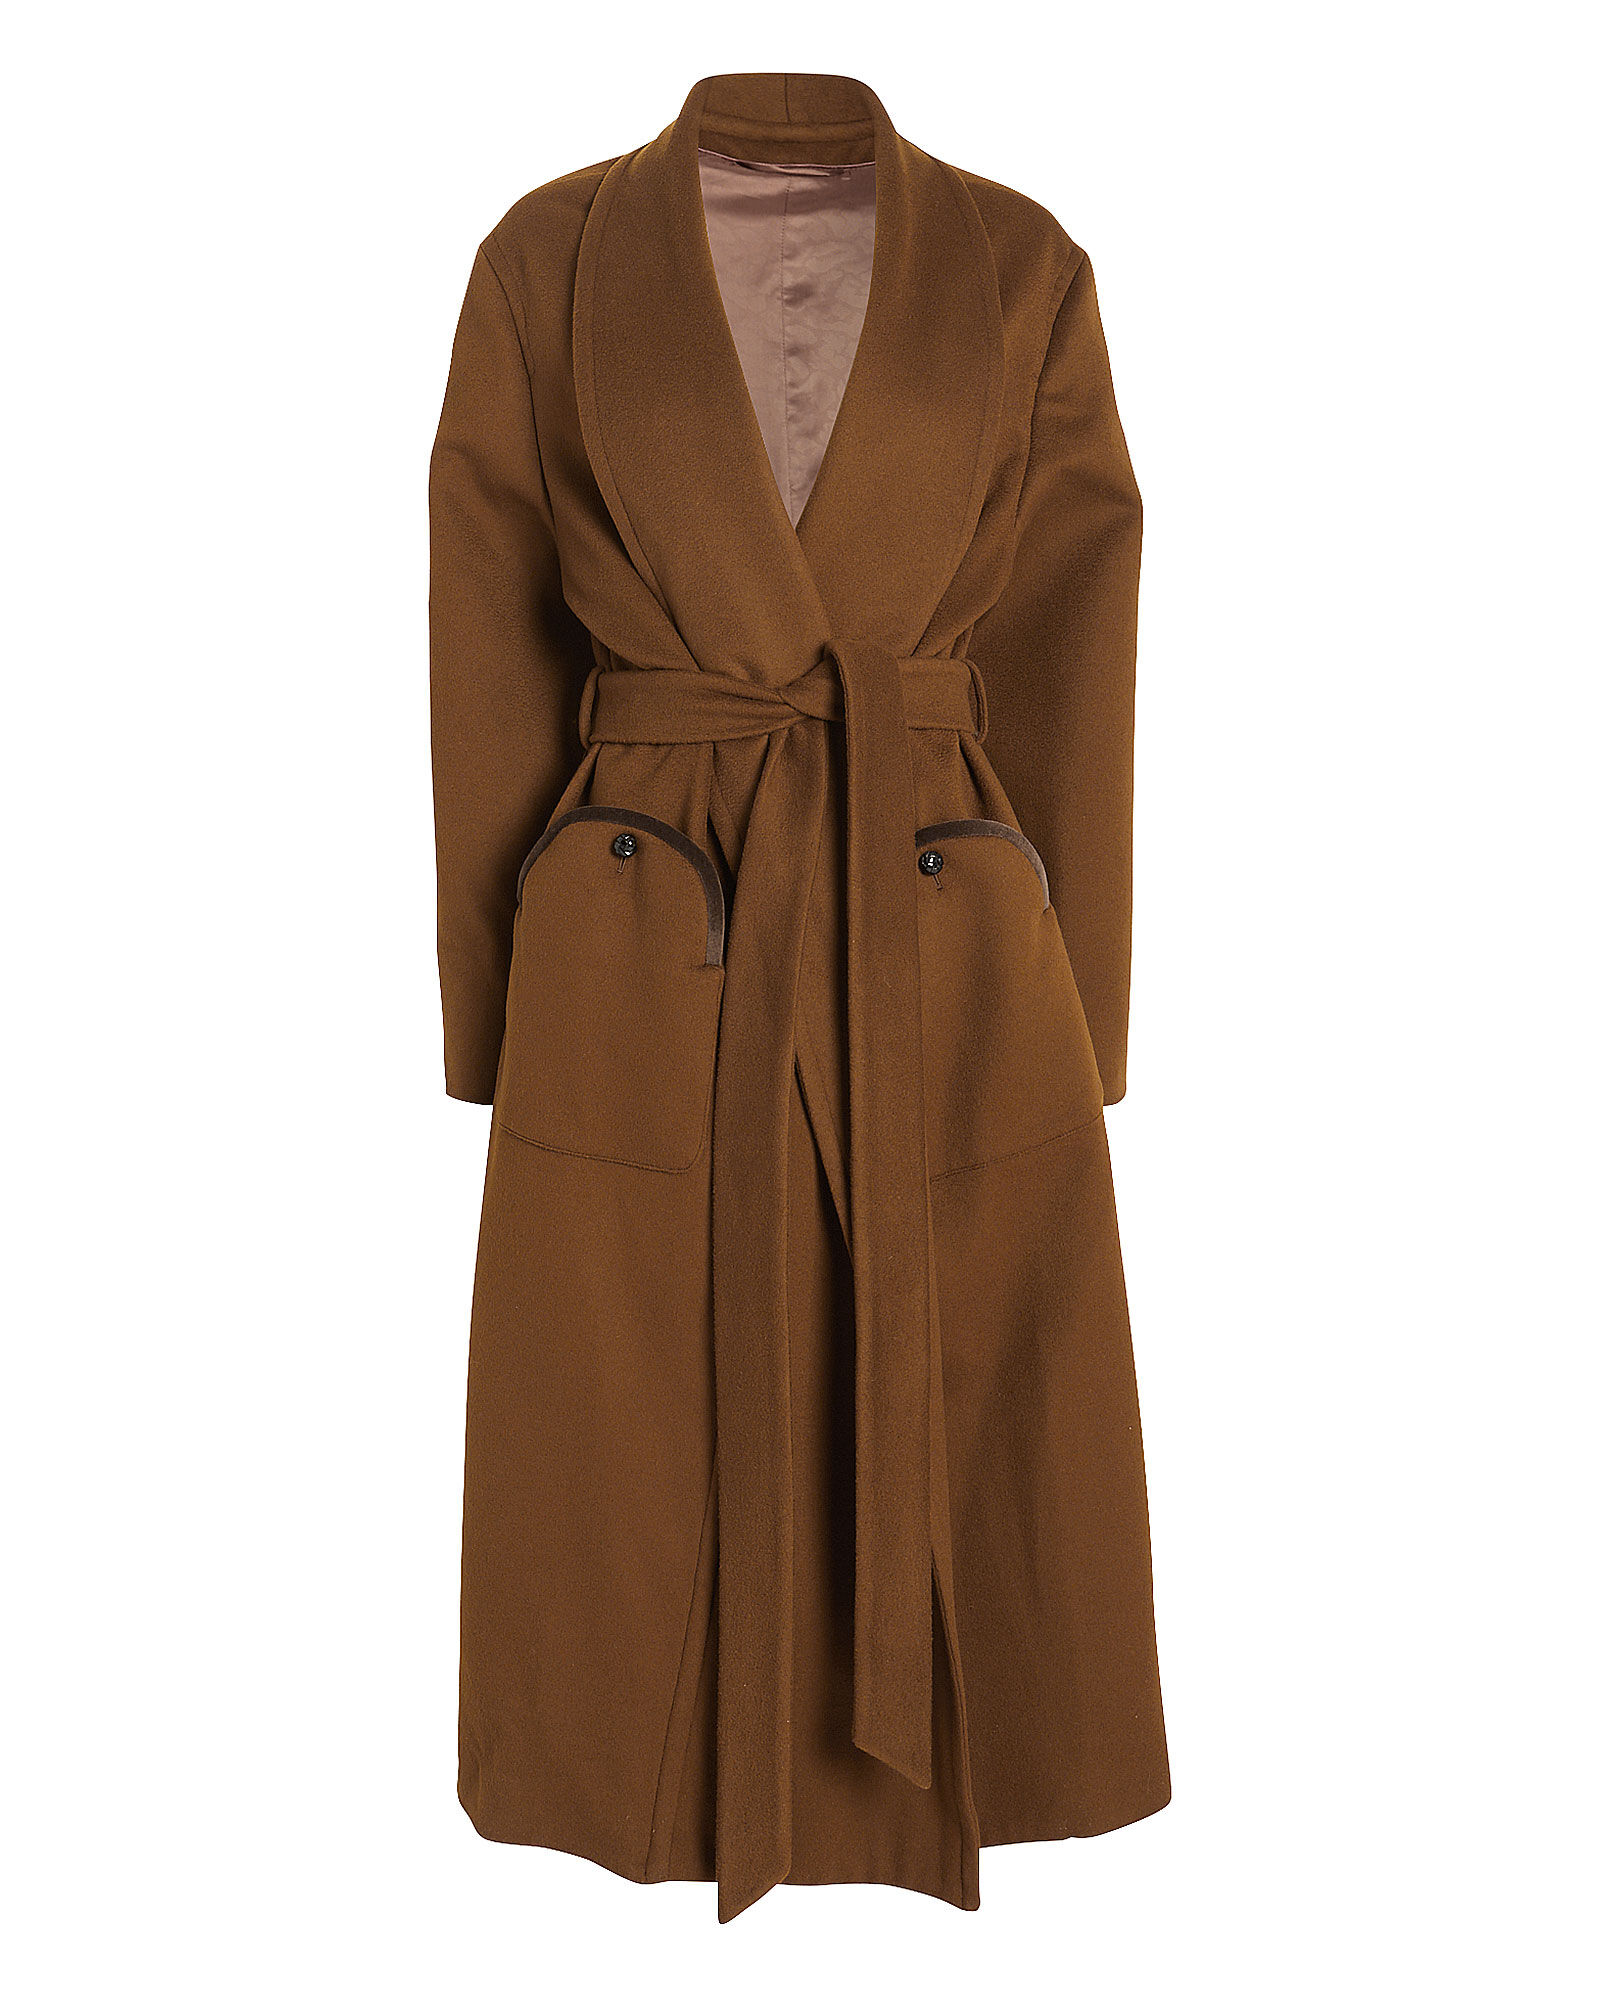 Whistler Wool-Cashmere Coat, BROWN, hi-res